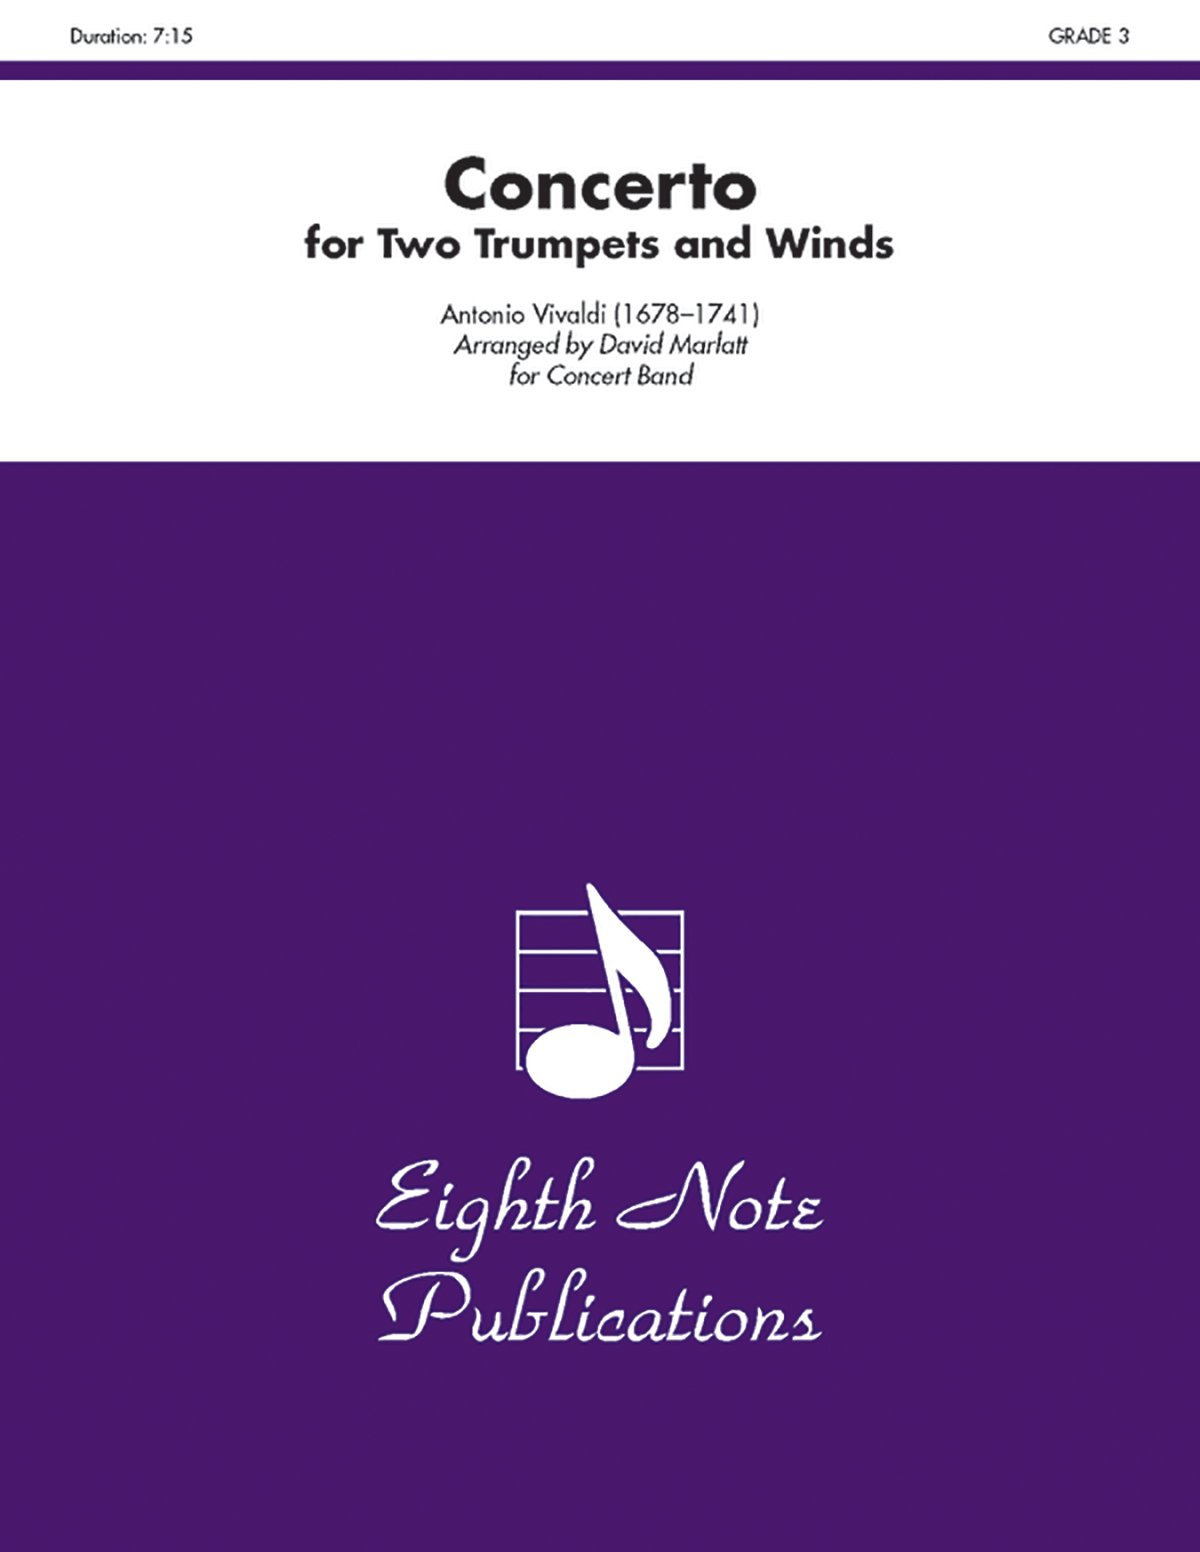 Concerto for Two Trumpets and Winds (Conductor Score & Parts) (Eighth Note Publications) ebook